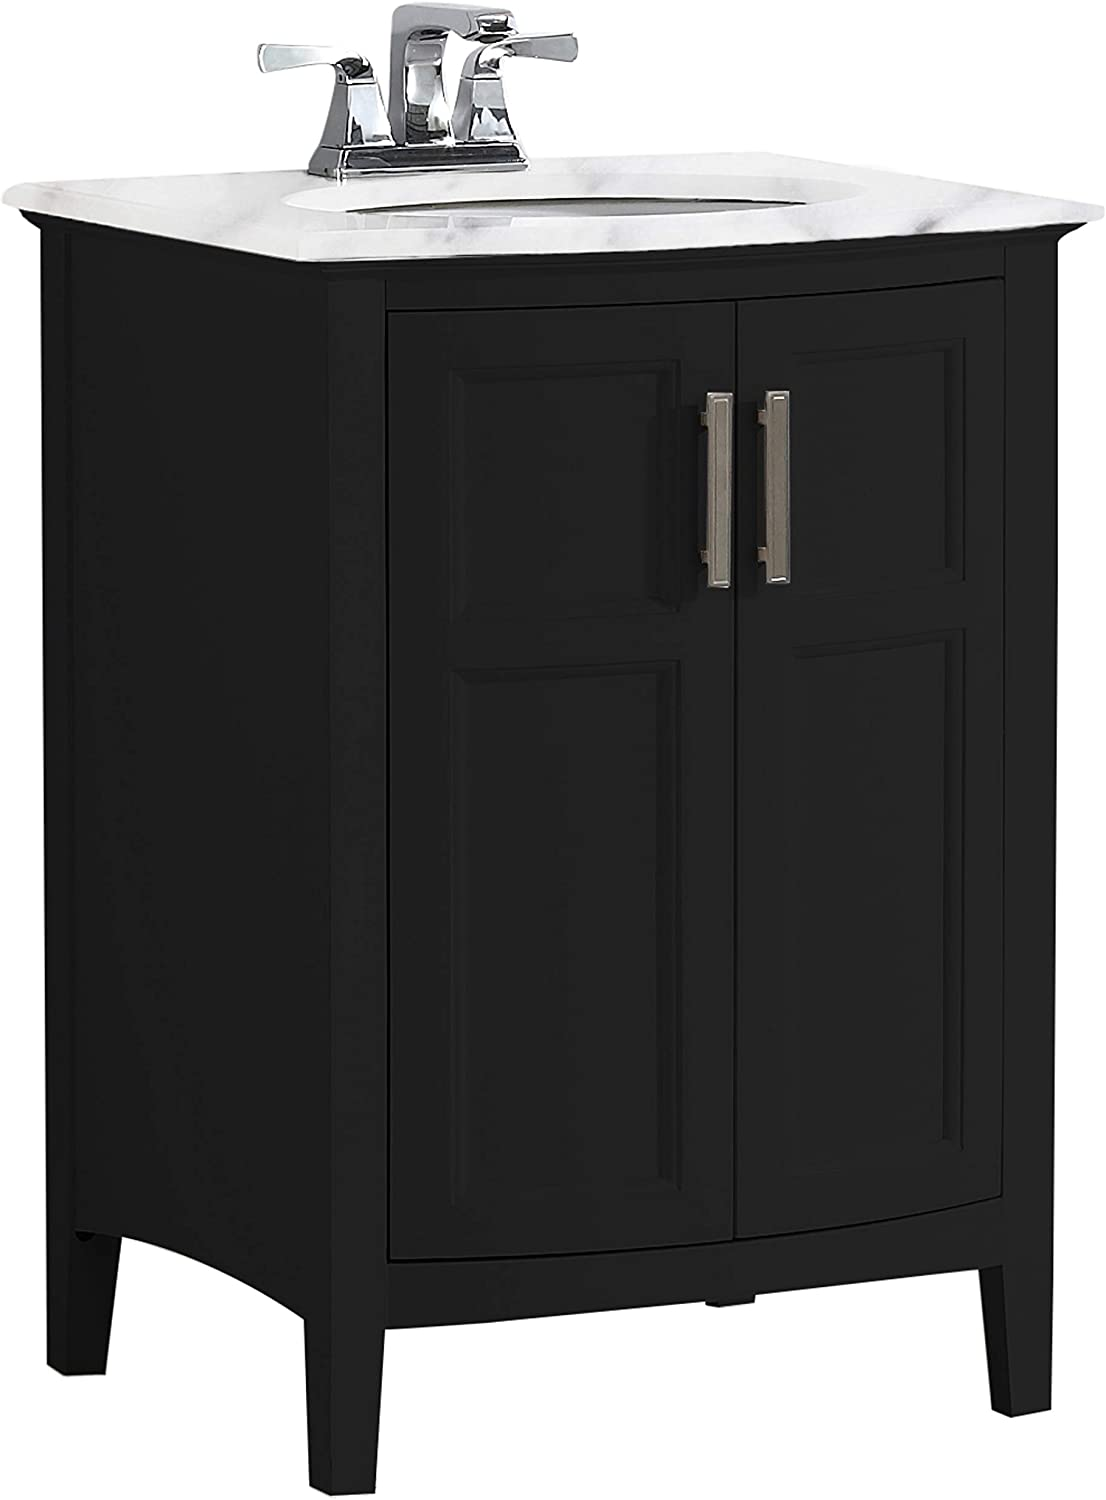 Simpli Home Winston 24 inch Contemporary Bath Vanity in Black with Bombay White Engineered Quartz Marble Extra Thick Top